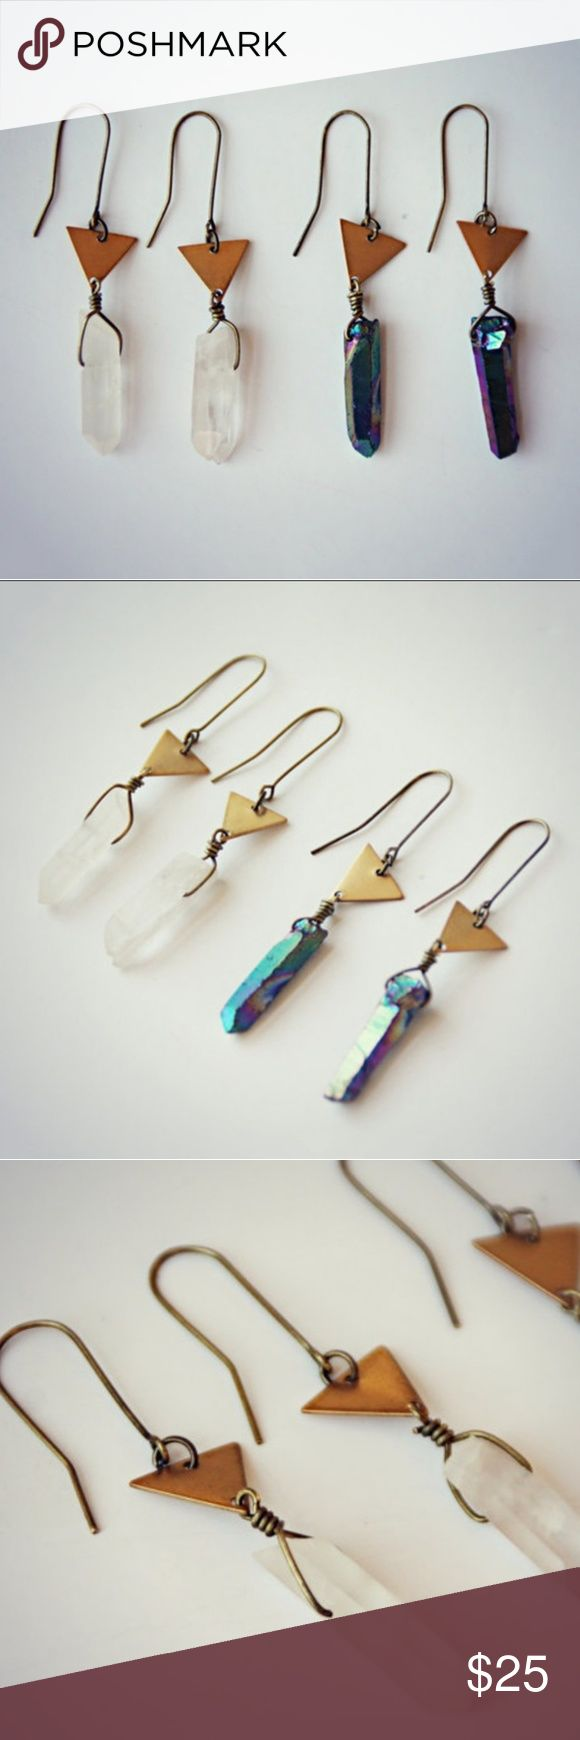 ️ Geometric Crystal earrings Brushed brass earrings with triangle and an organic shaped Crystal/stone pendulum.  MSRP$45 Comes in clear quarts or titanium adonized quartz  tags: hippie, gypsy , boho, bohemian, mermaid,  witchy, Crystal, geology, occult, Crystal healing, reiki, yogi ➖➖➖➖➖➖➖➖➖➖➖➖➖➖➖ ⚠️PRICE IS FIRM! No offers/trades/email/other apps! Bundle for discount  ℹAny questions please ask Jewelry Earrings